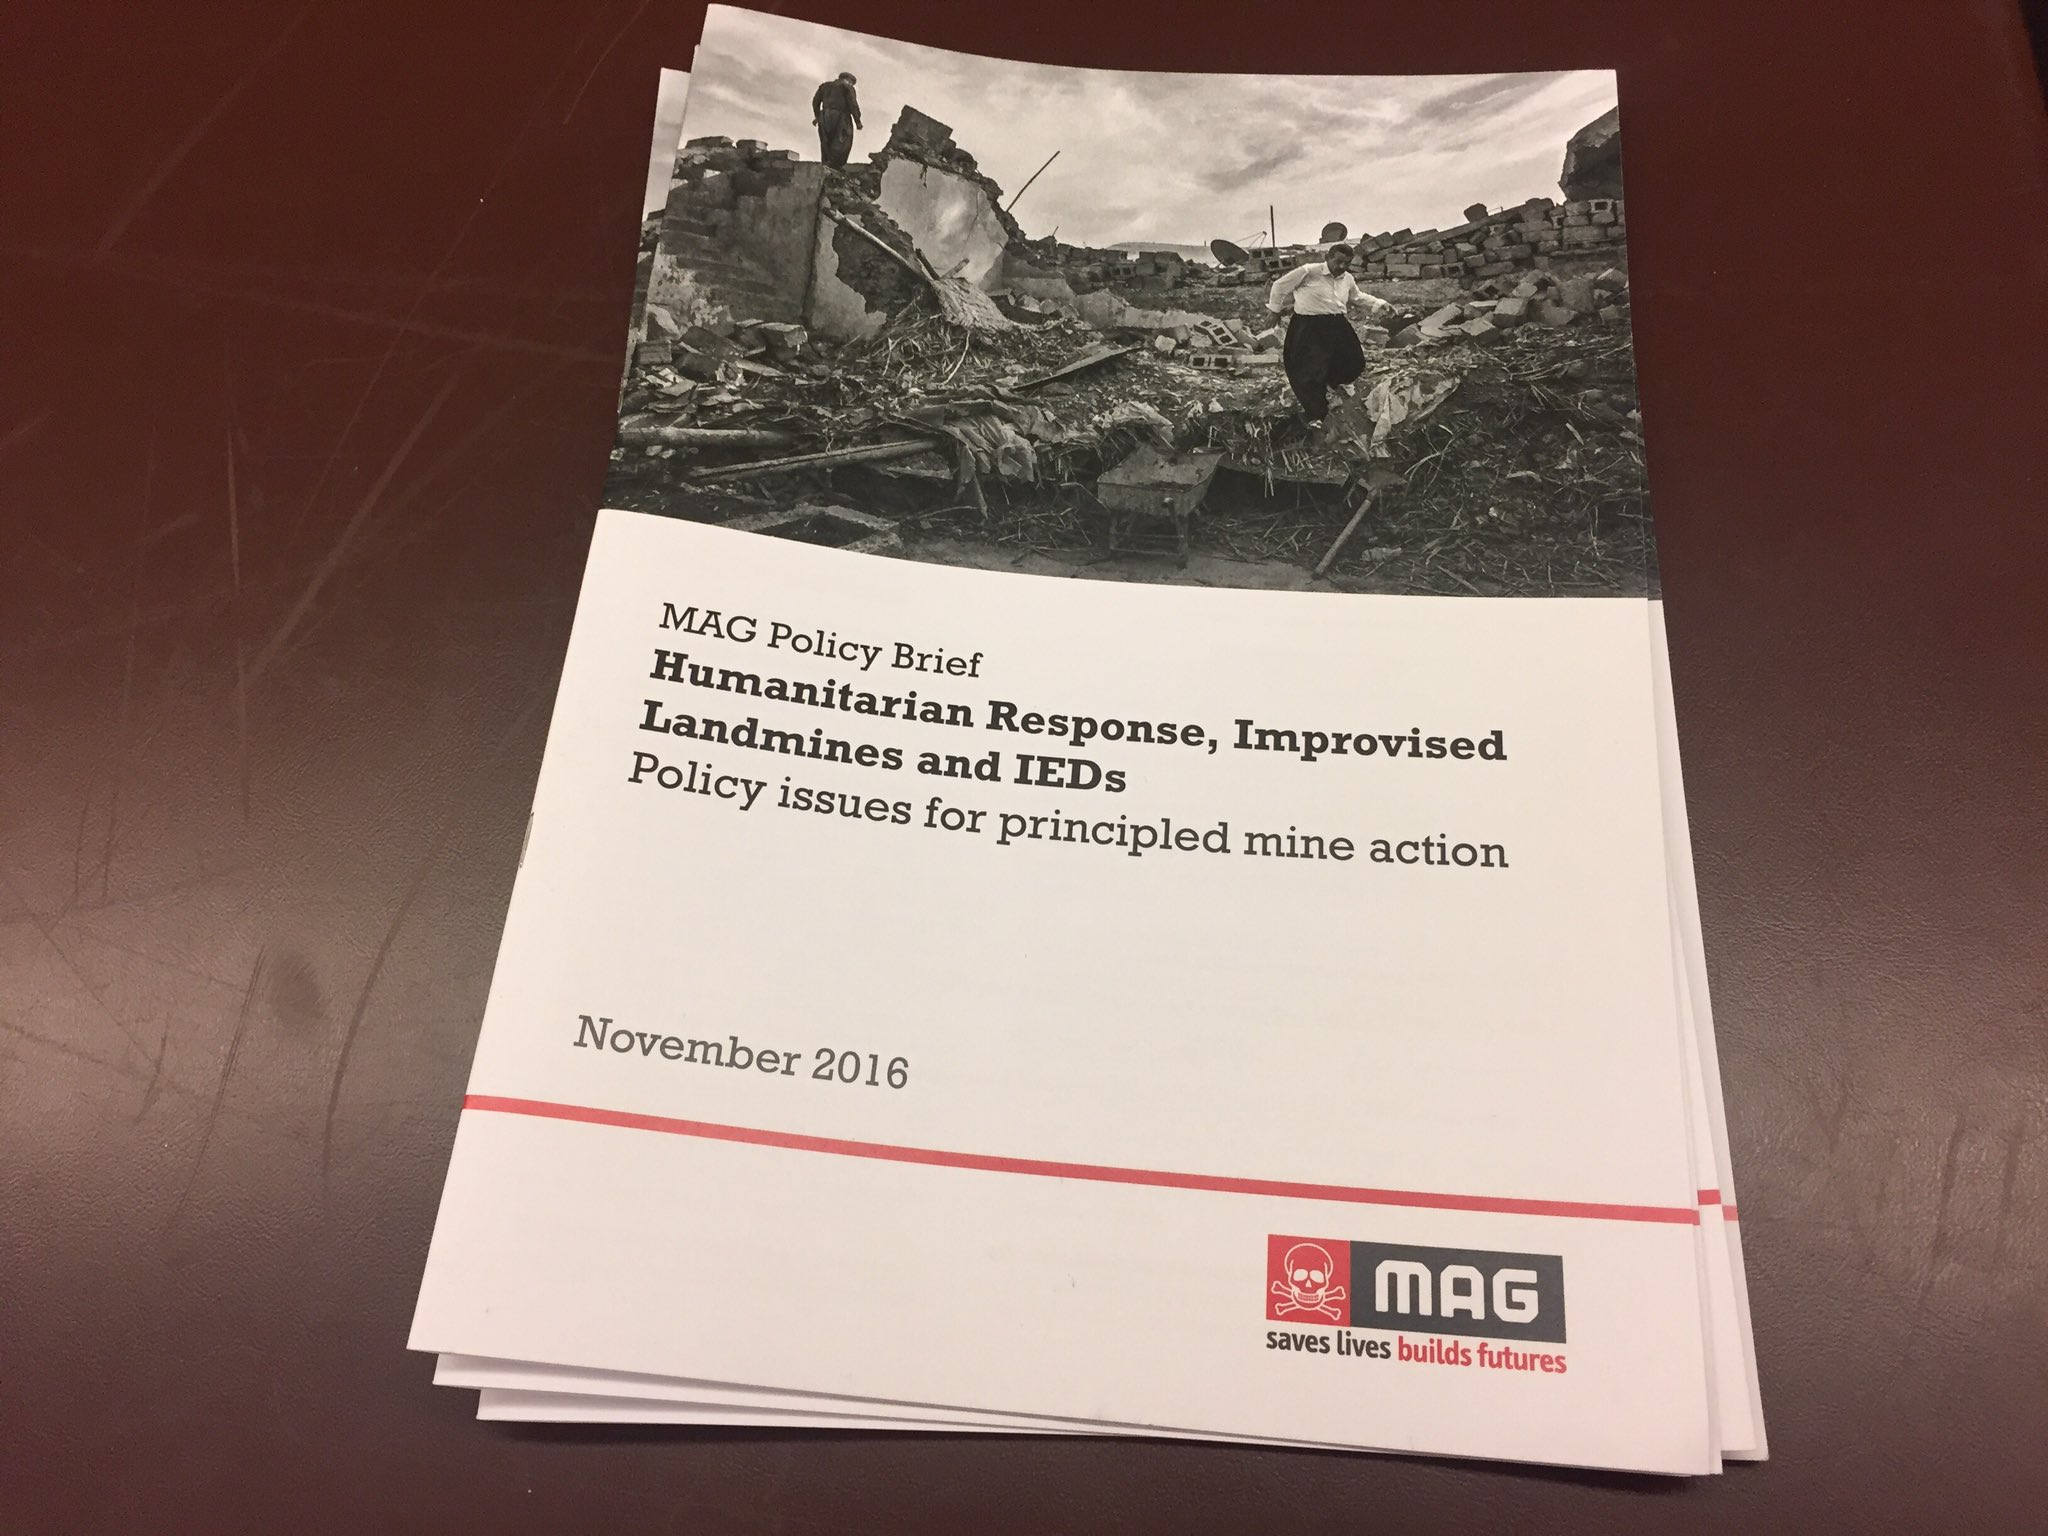 Recommended reading for #CCWUN delegates concerned w. improvised LANDMINES. Vast majority = victim-activated & PROHIBITED by @MineBanTreaty https://t.co/DSGO0NWkE5